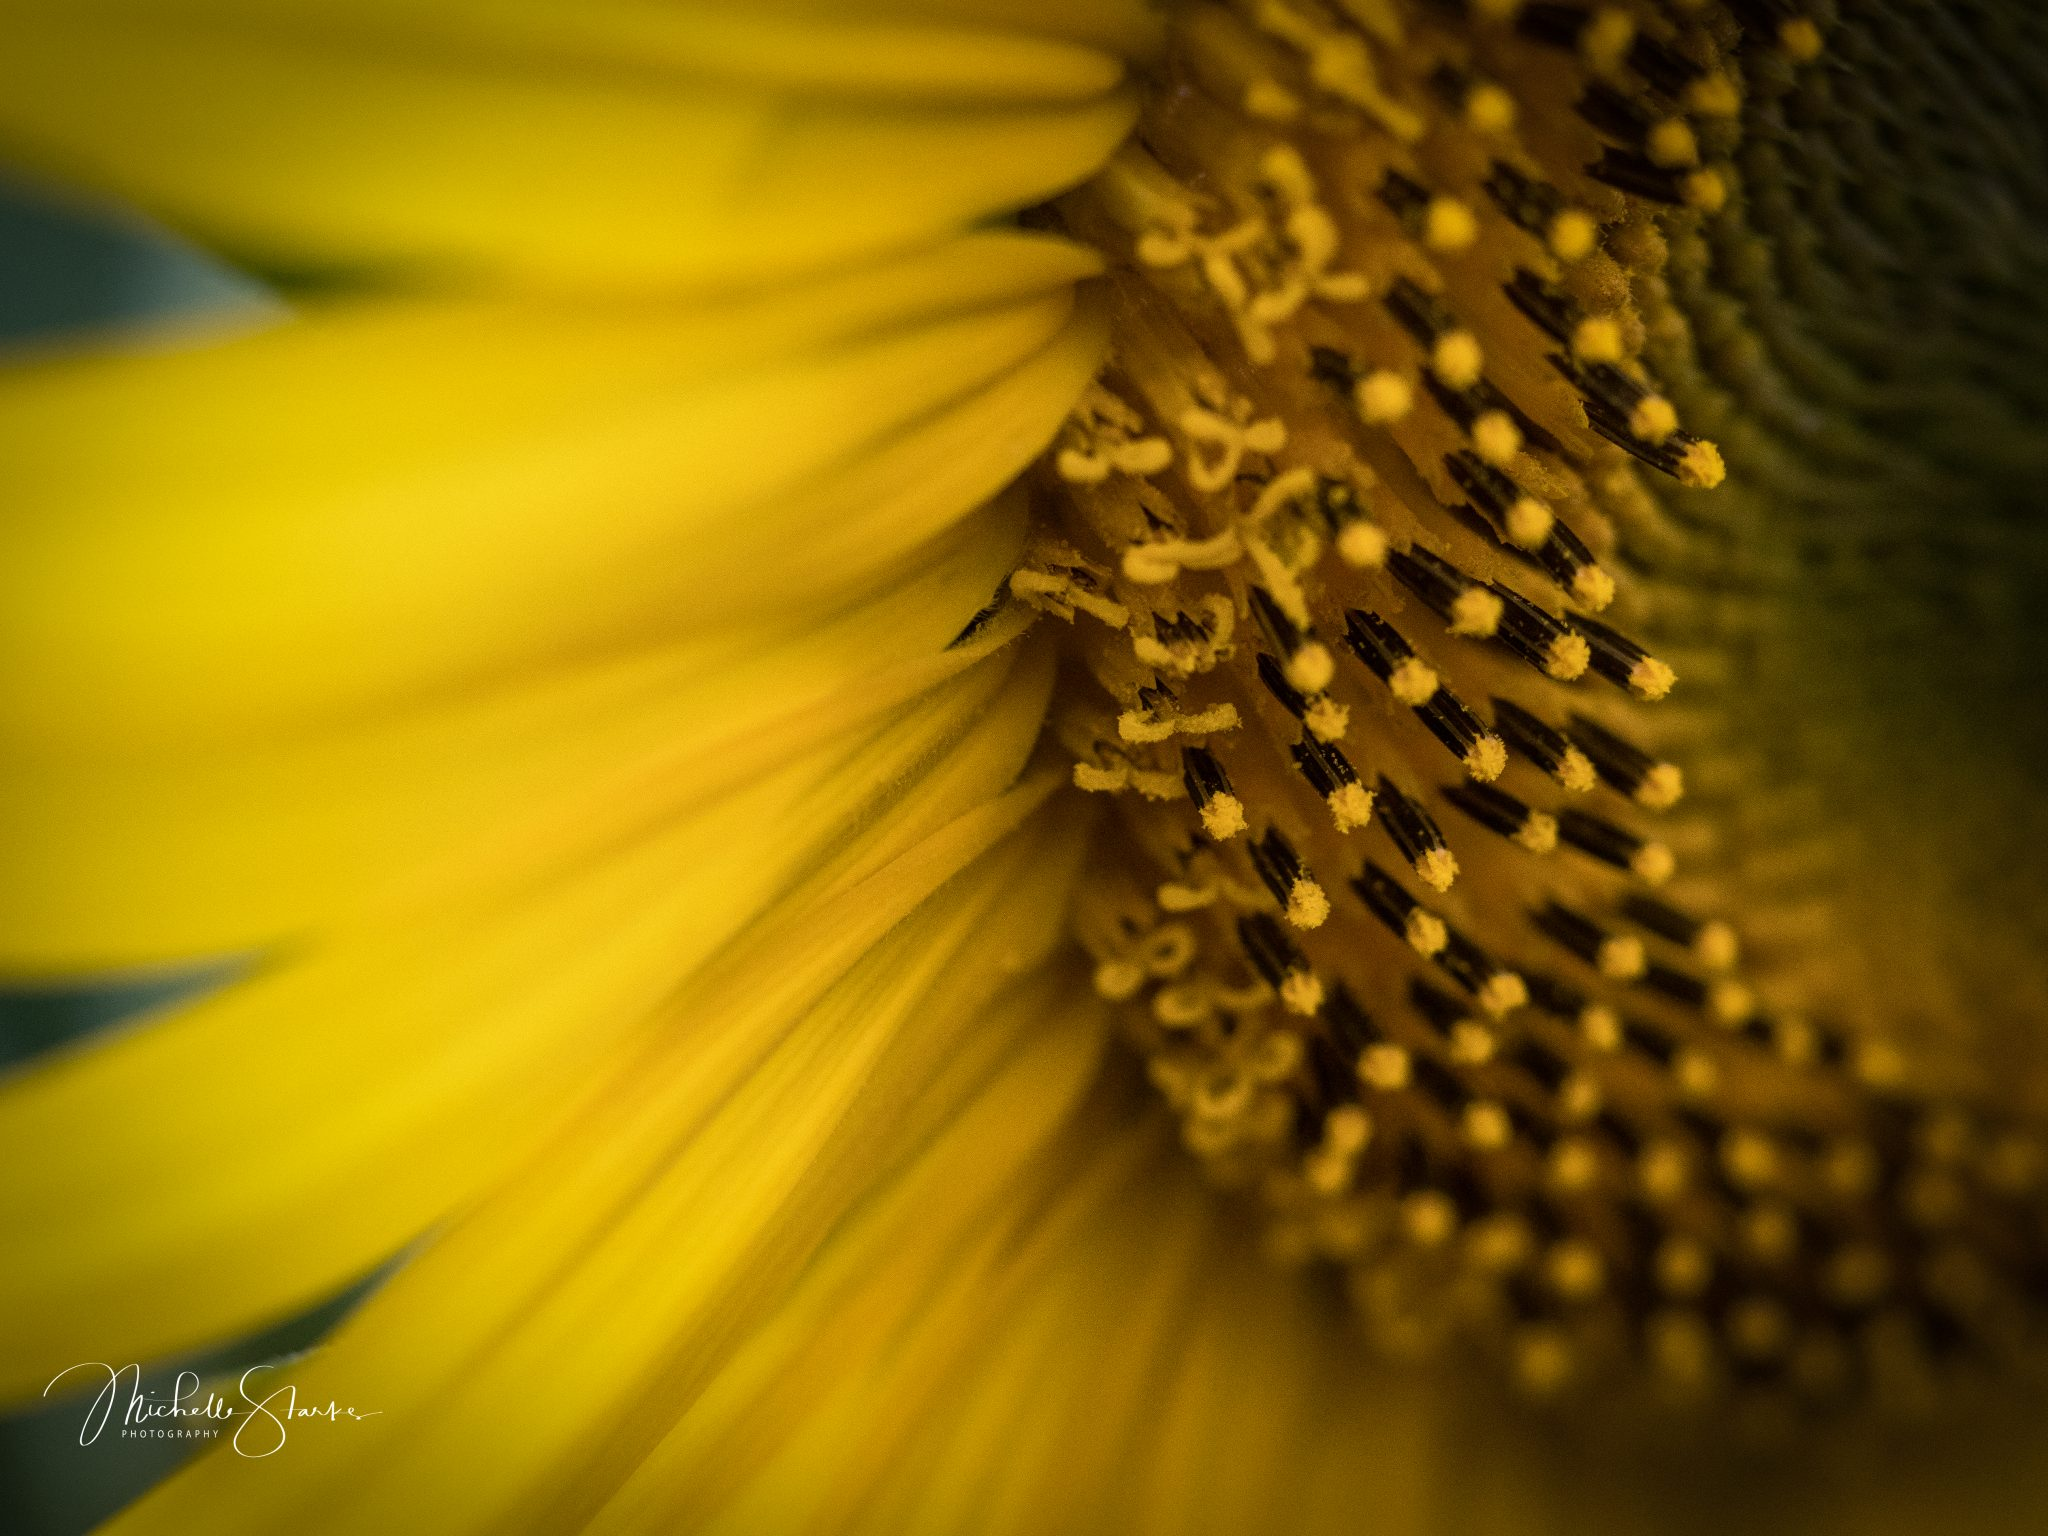 Sunflower, Hackettstown, NJ